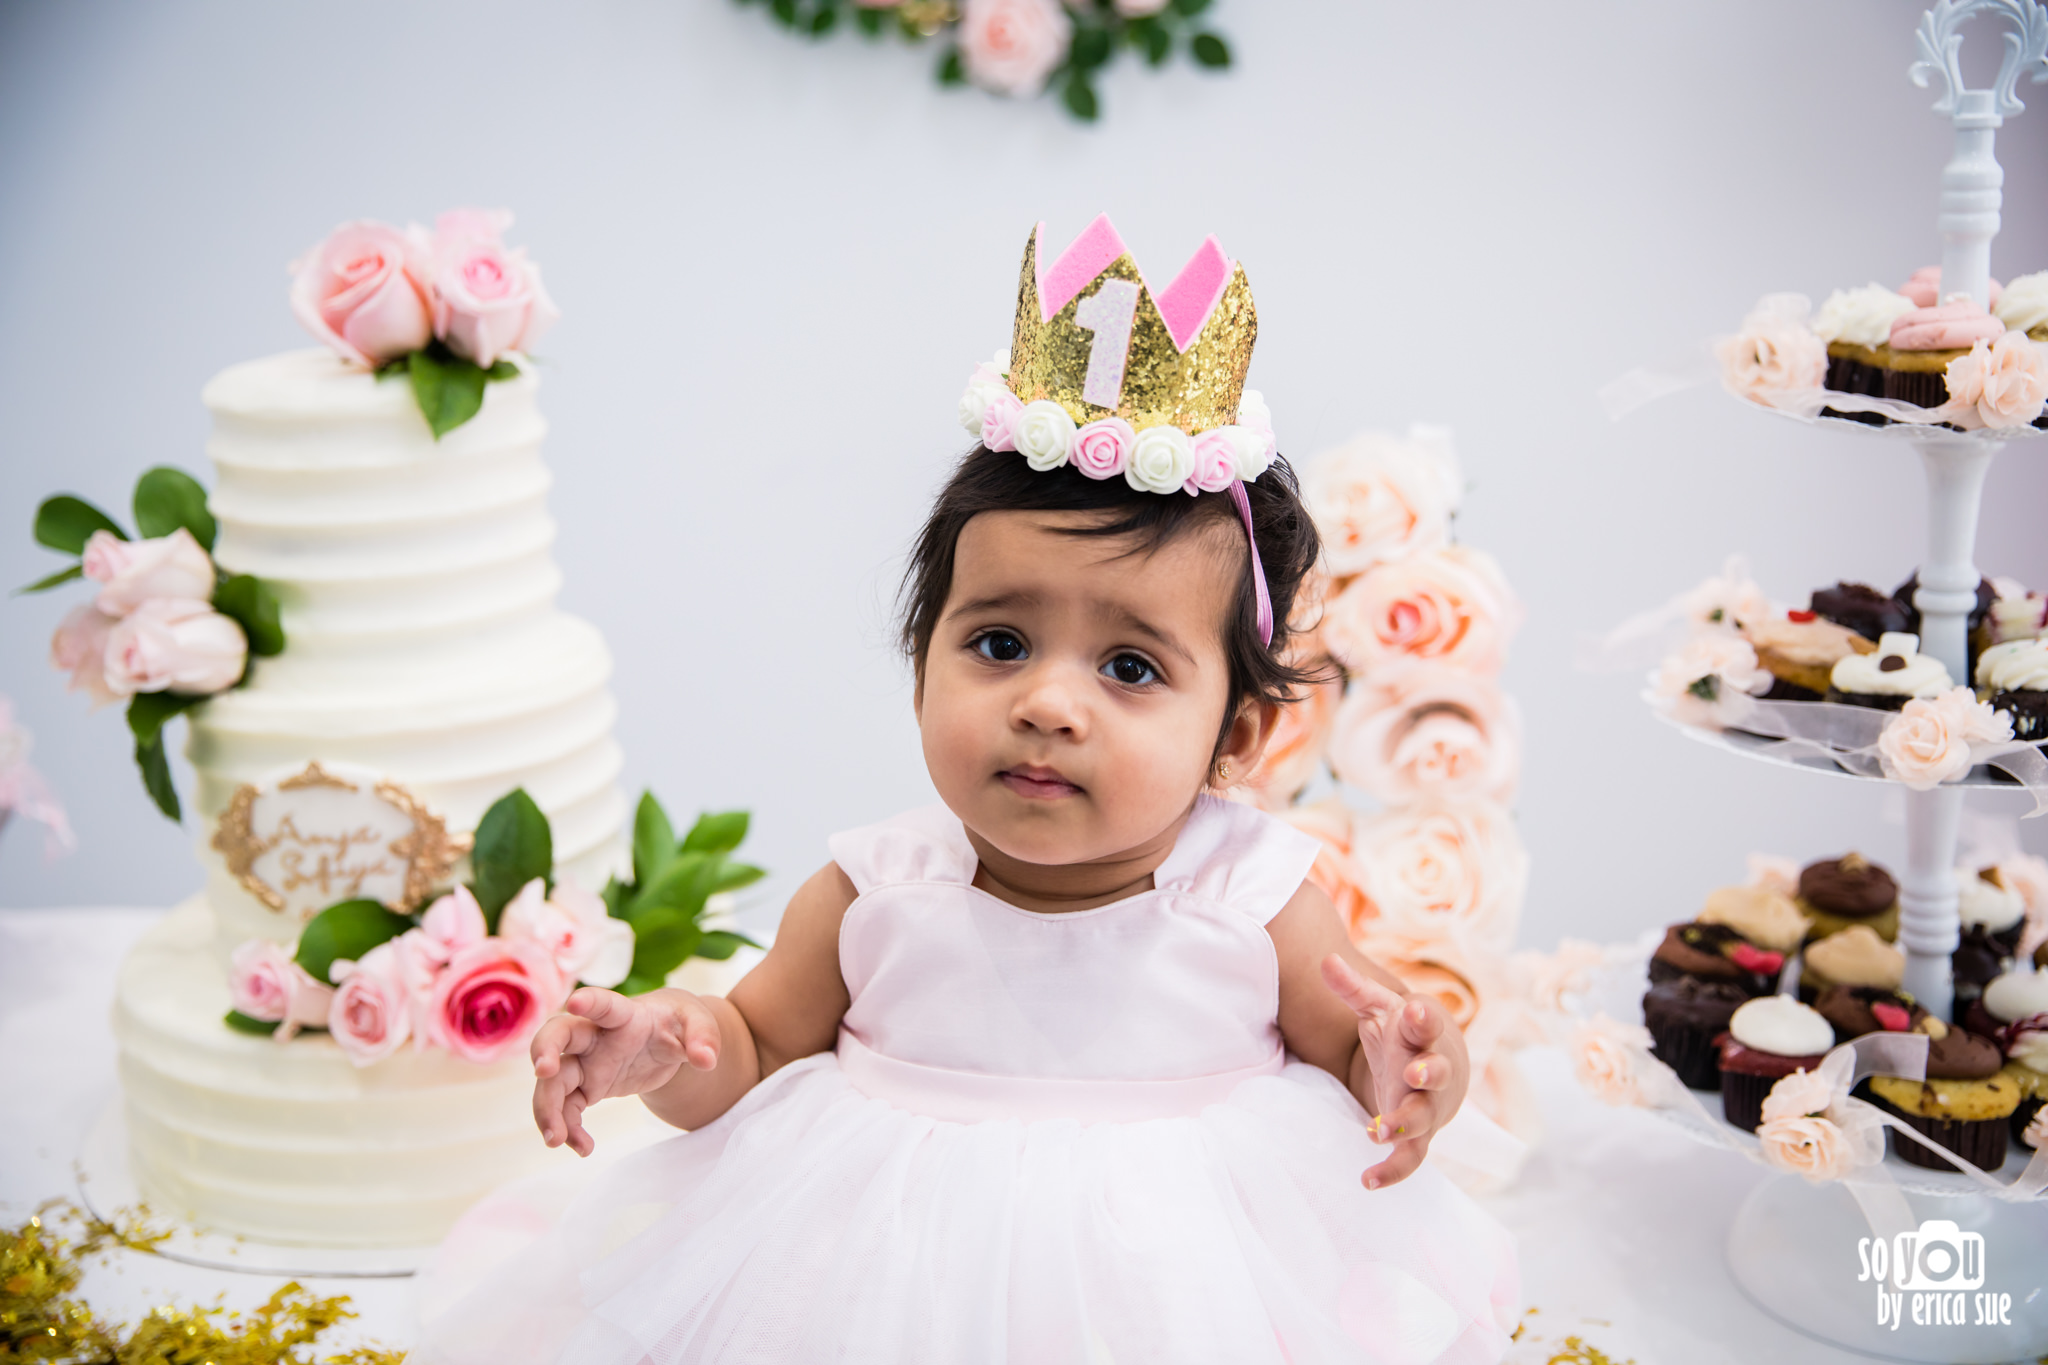 so-you-by-erica-sue-first-birthday-photographer-pembroke-pines-5412.jpg